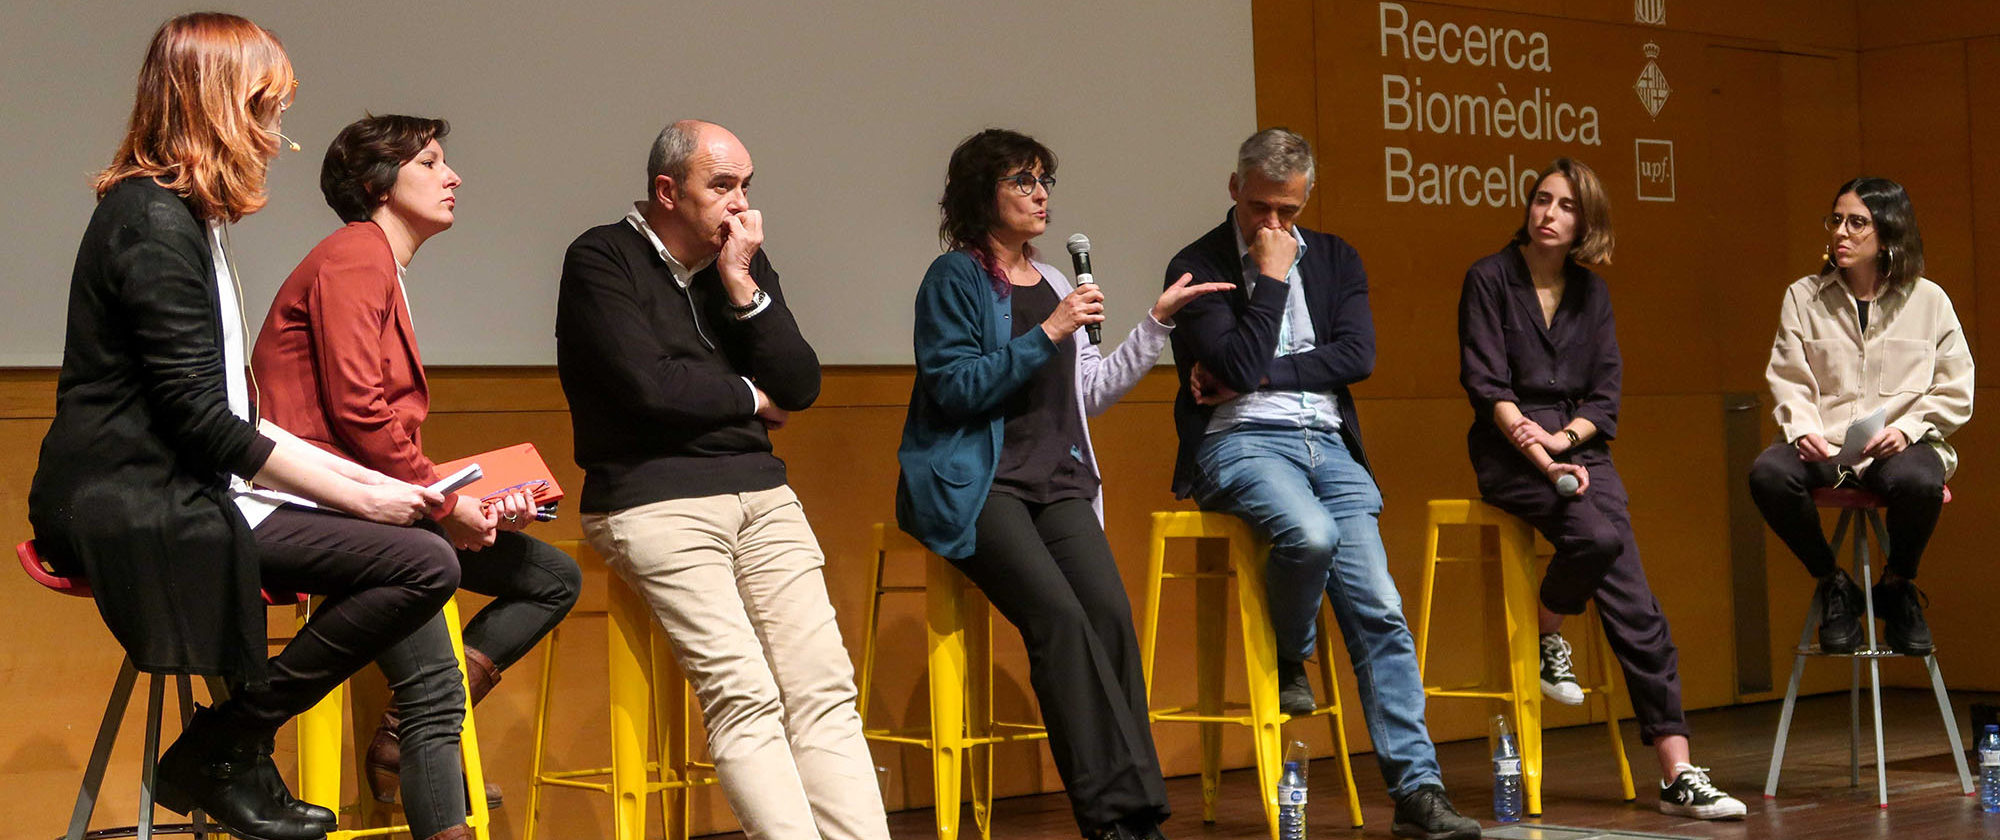 "Picture of the debate that took place after the screening of the documentary ""Scientifilia""."